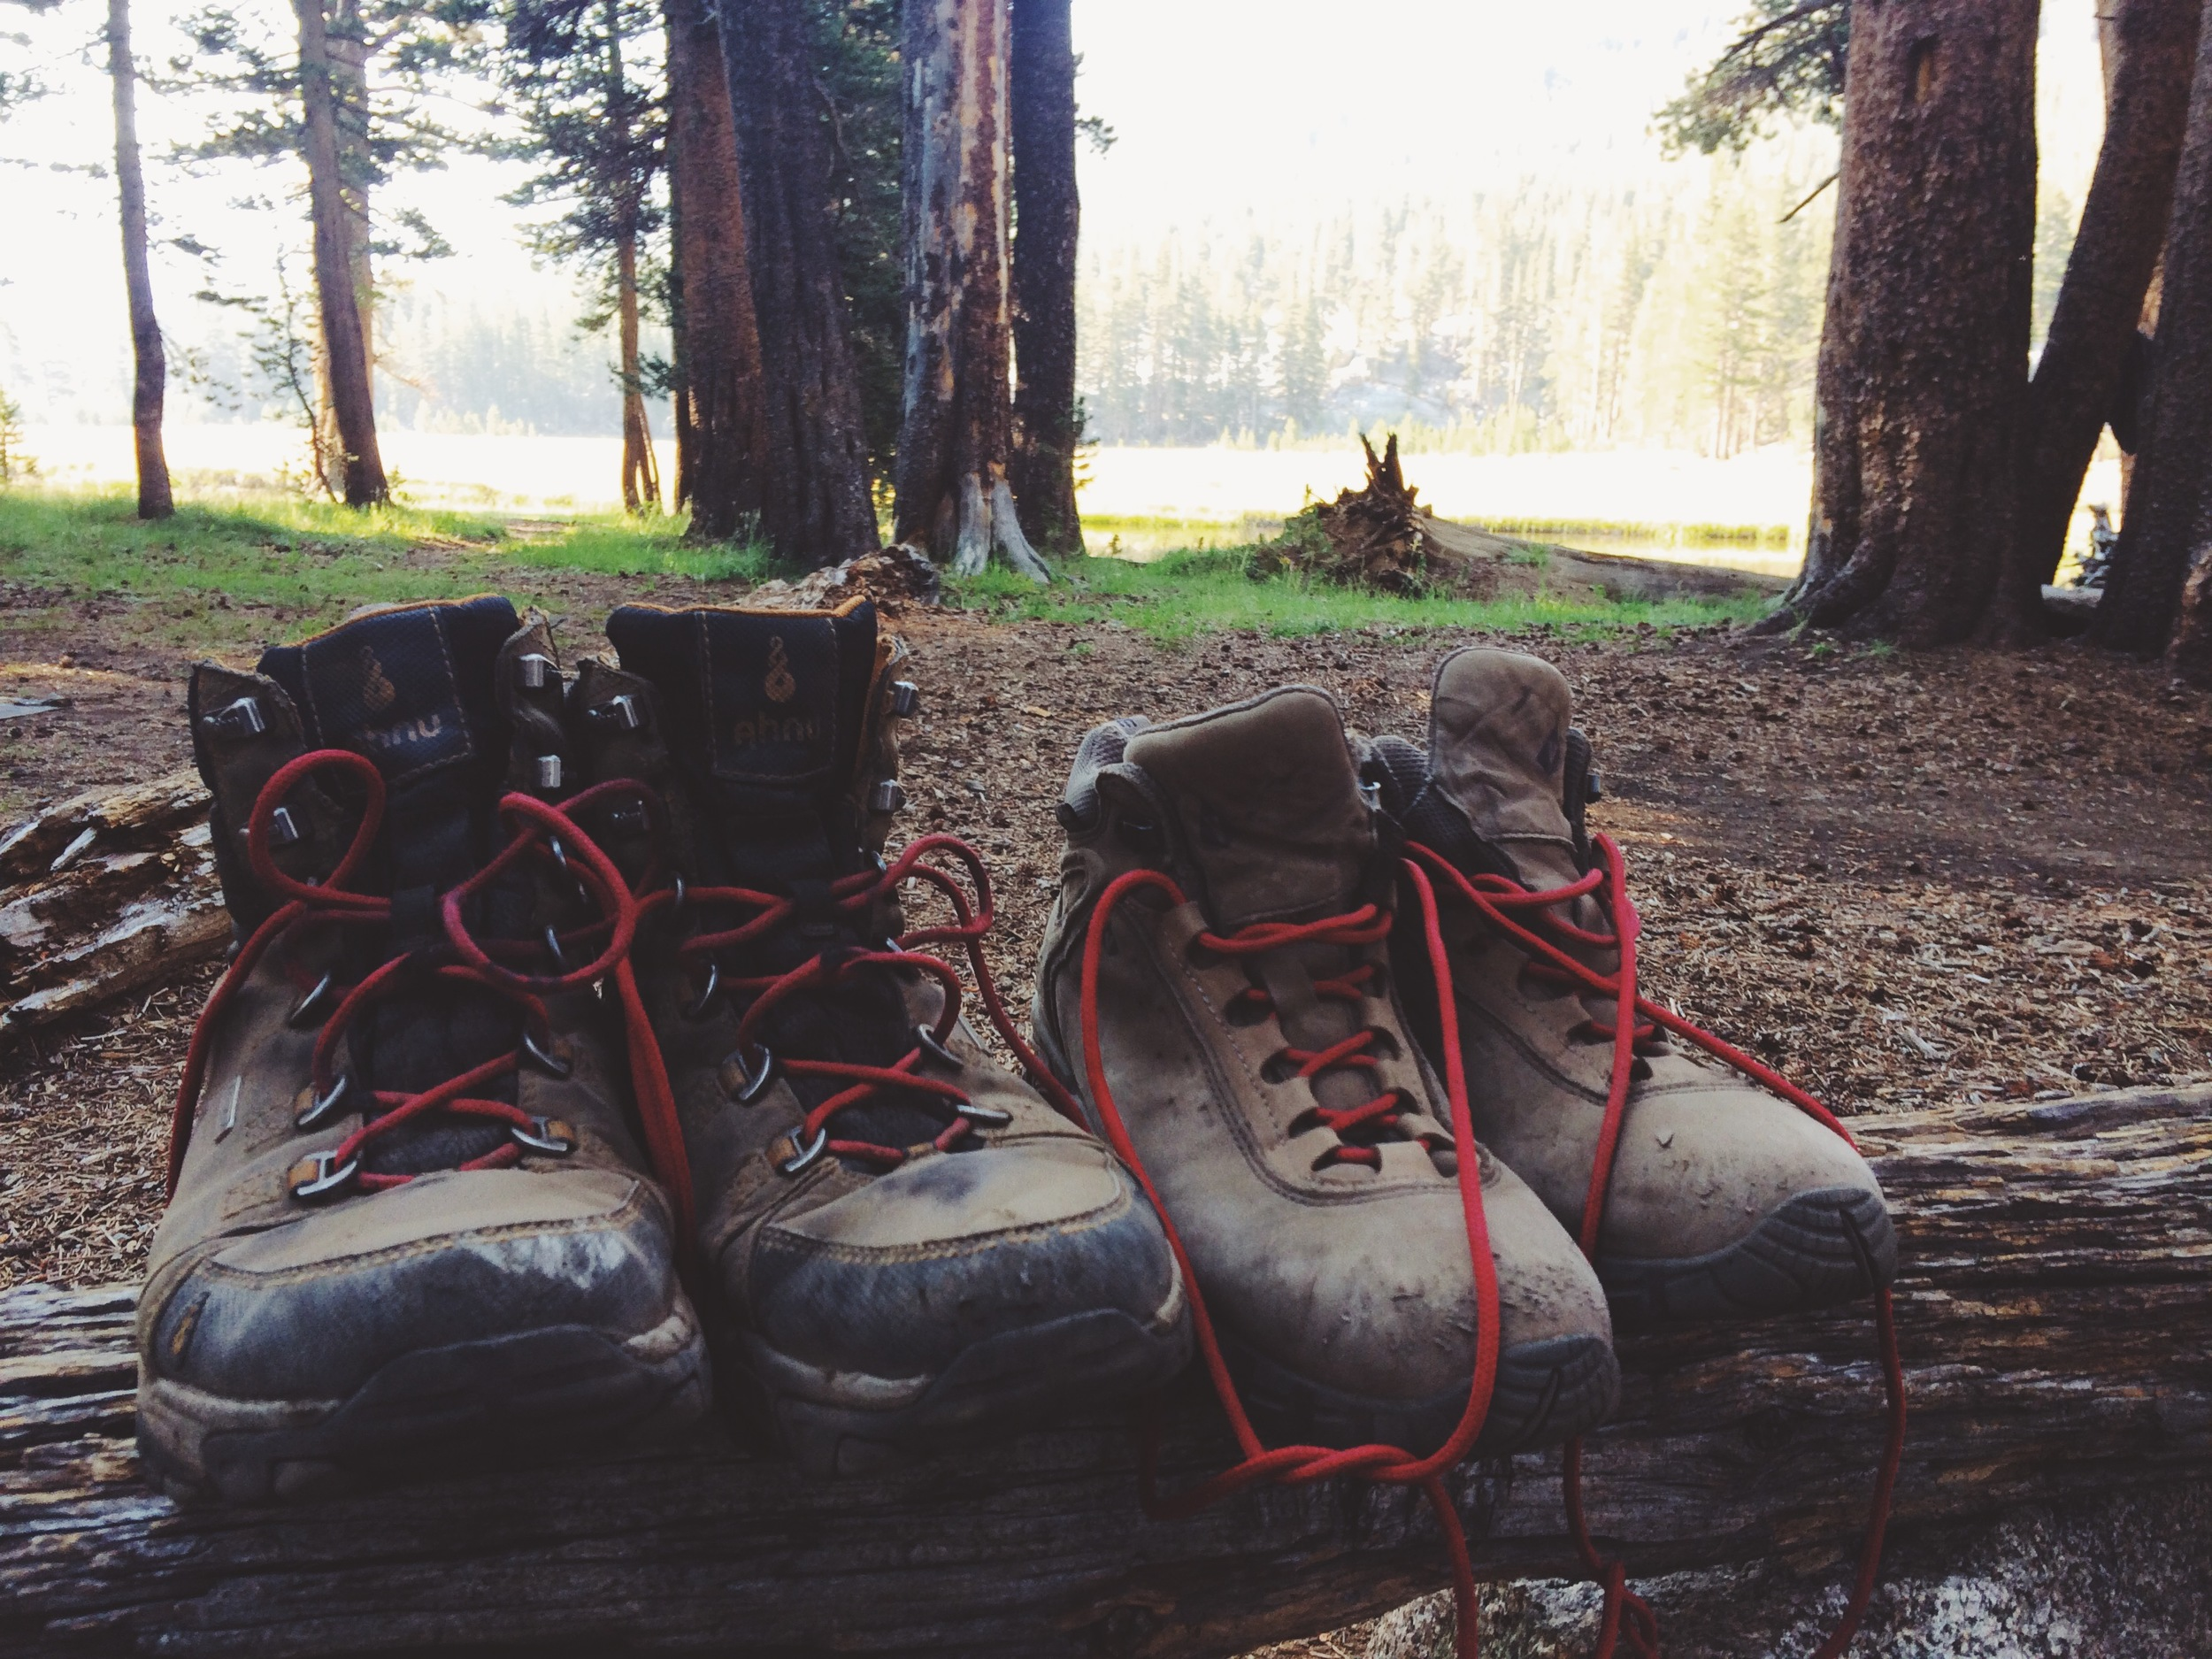 Our boots showing scars of rocky terrain.